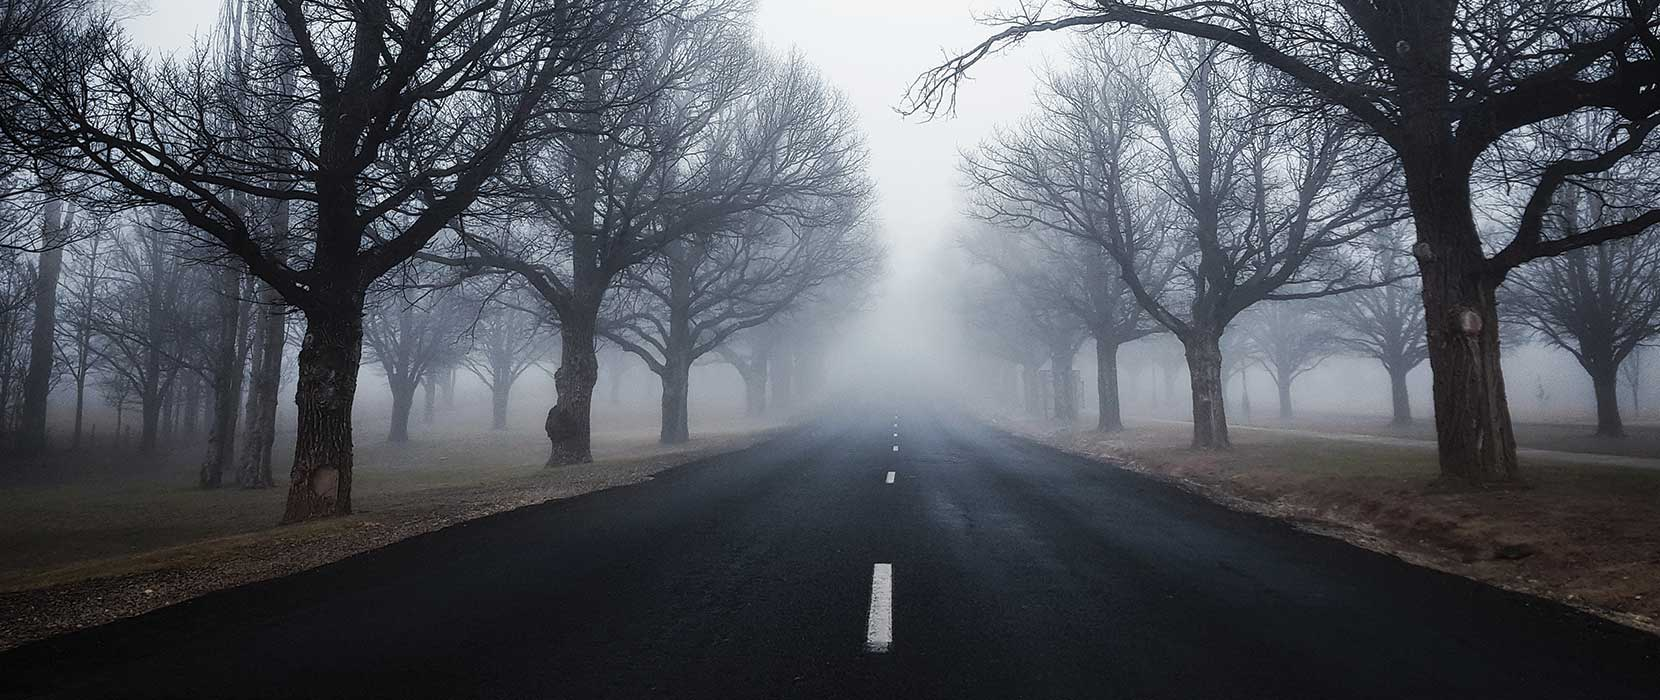 A misty road lined with deciduous trees in winter.